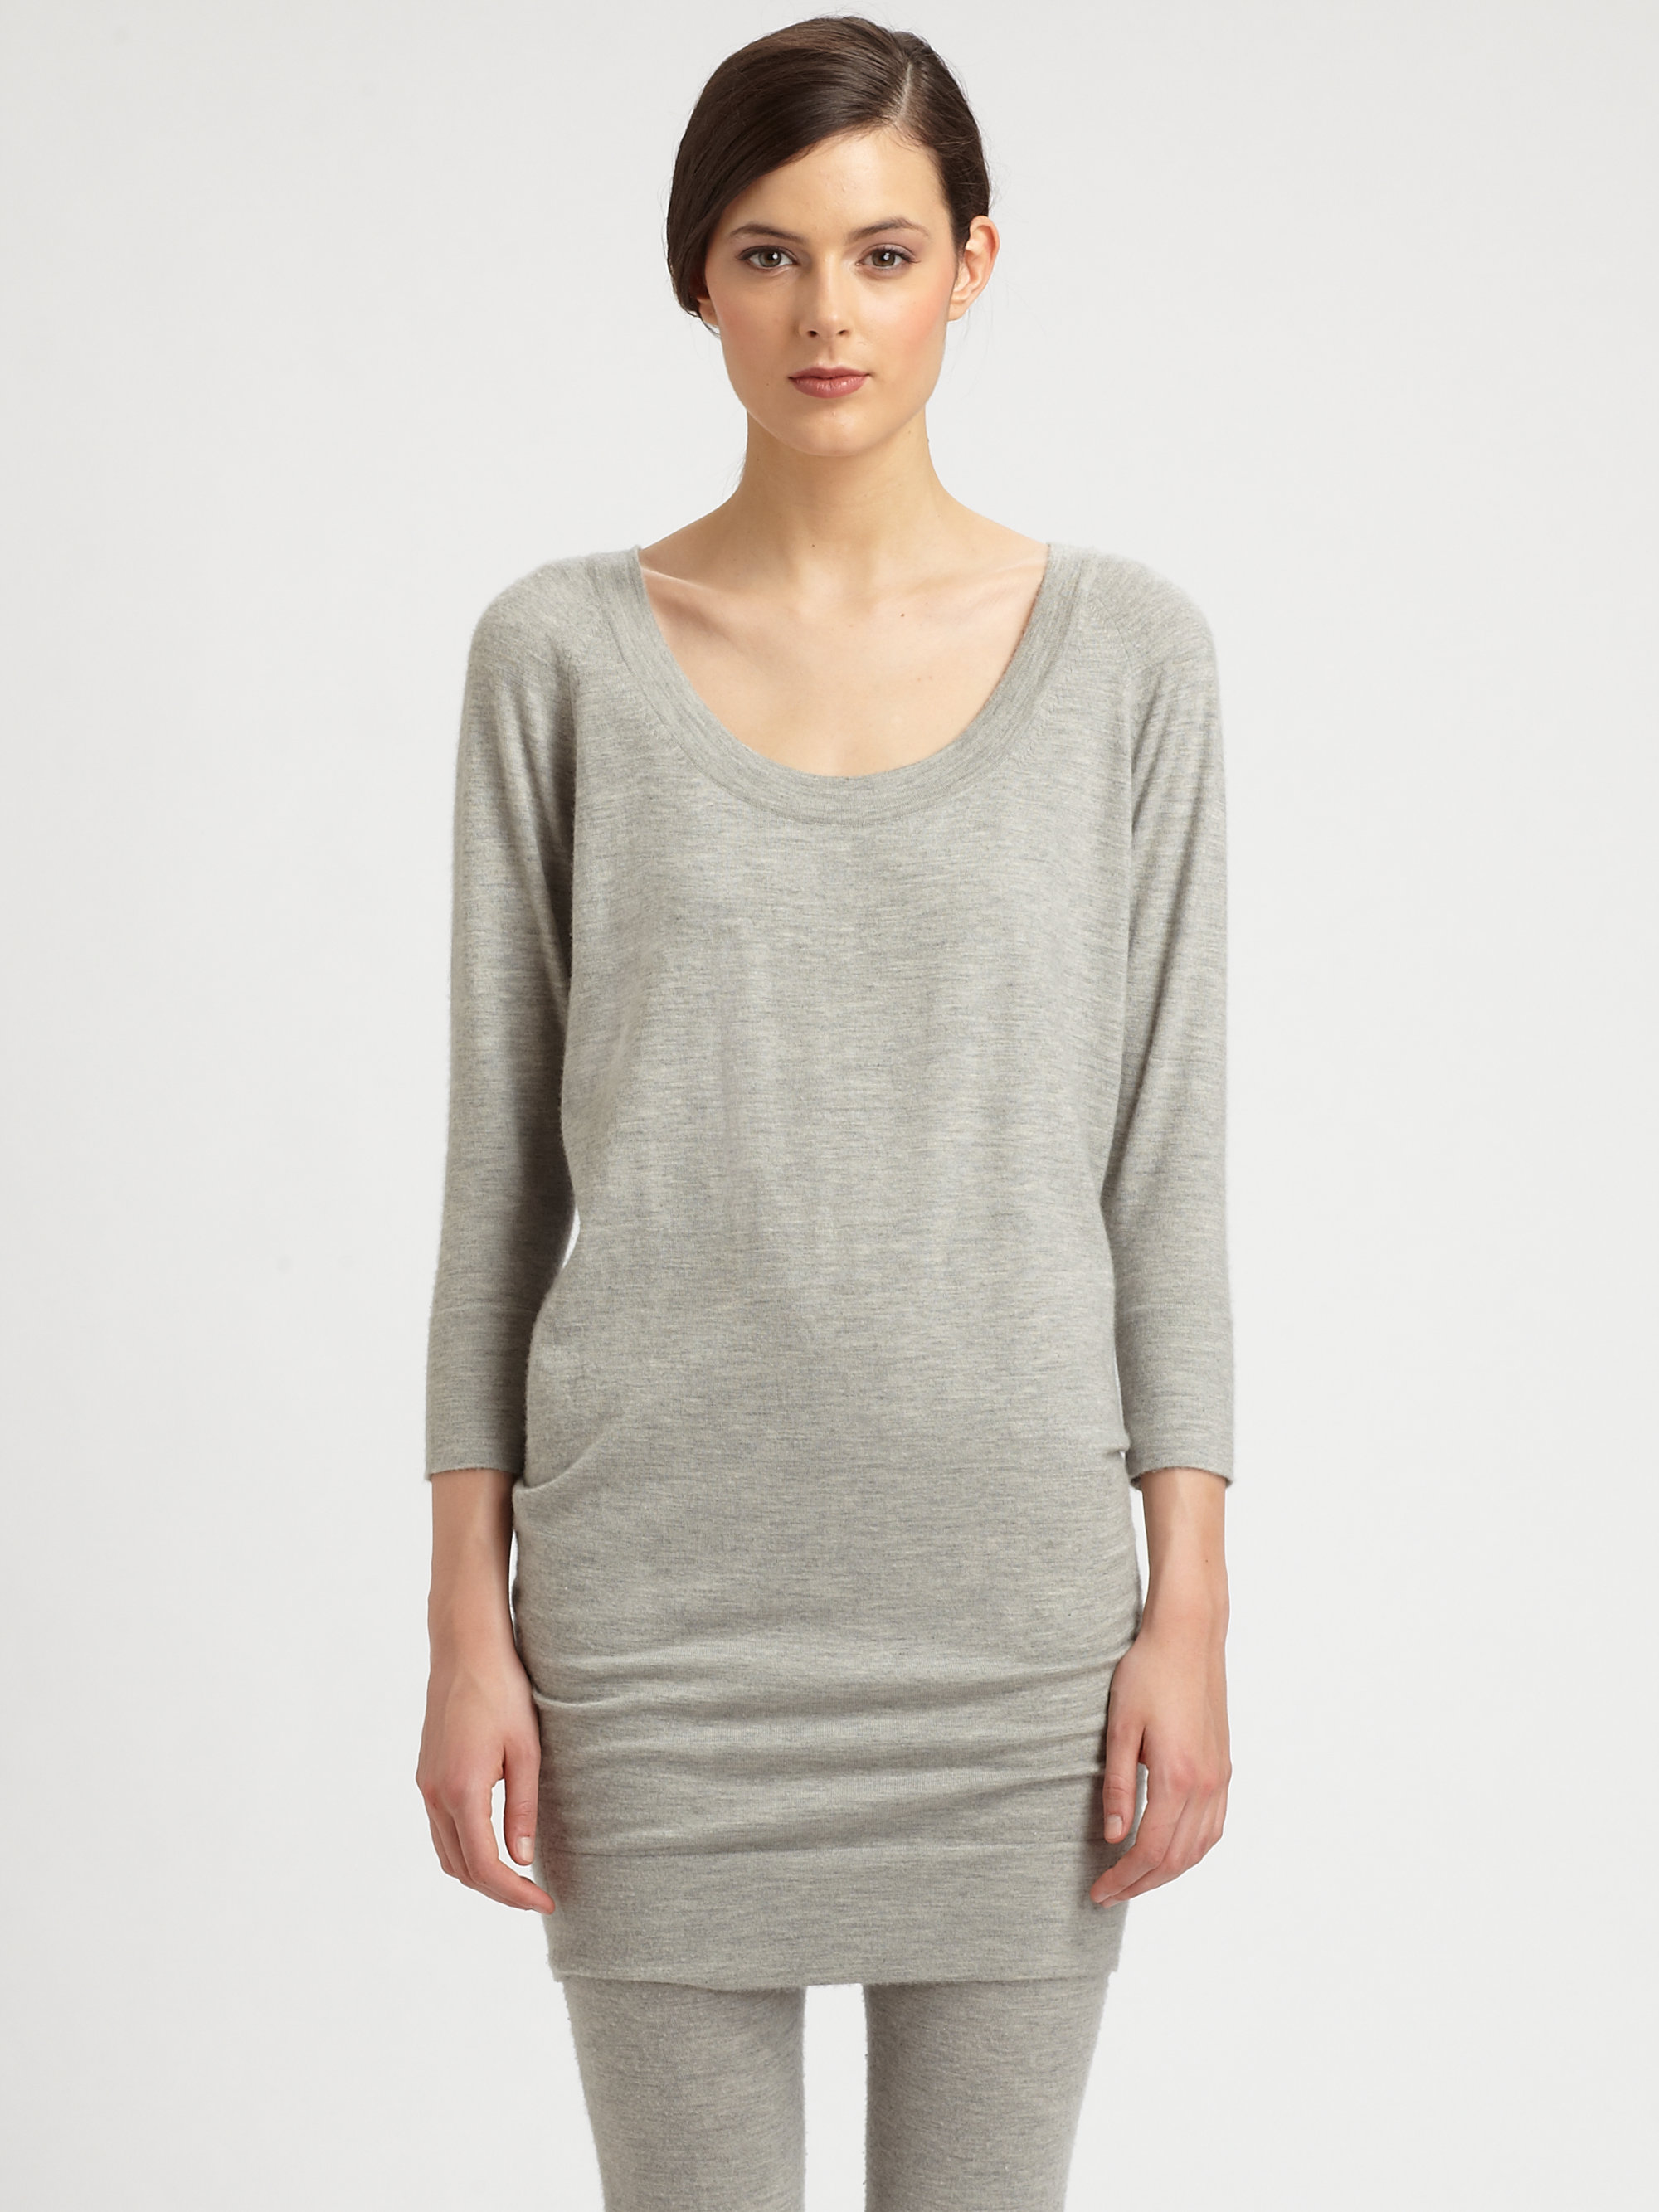 Donna karan new york cashmere dolmansleeved tunic in gray for Donna karen new york